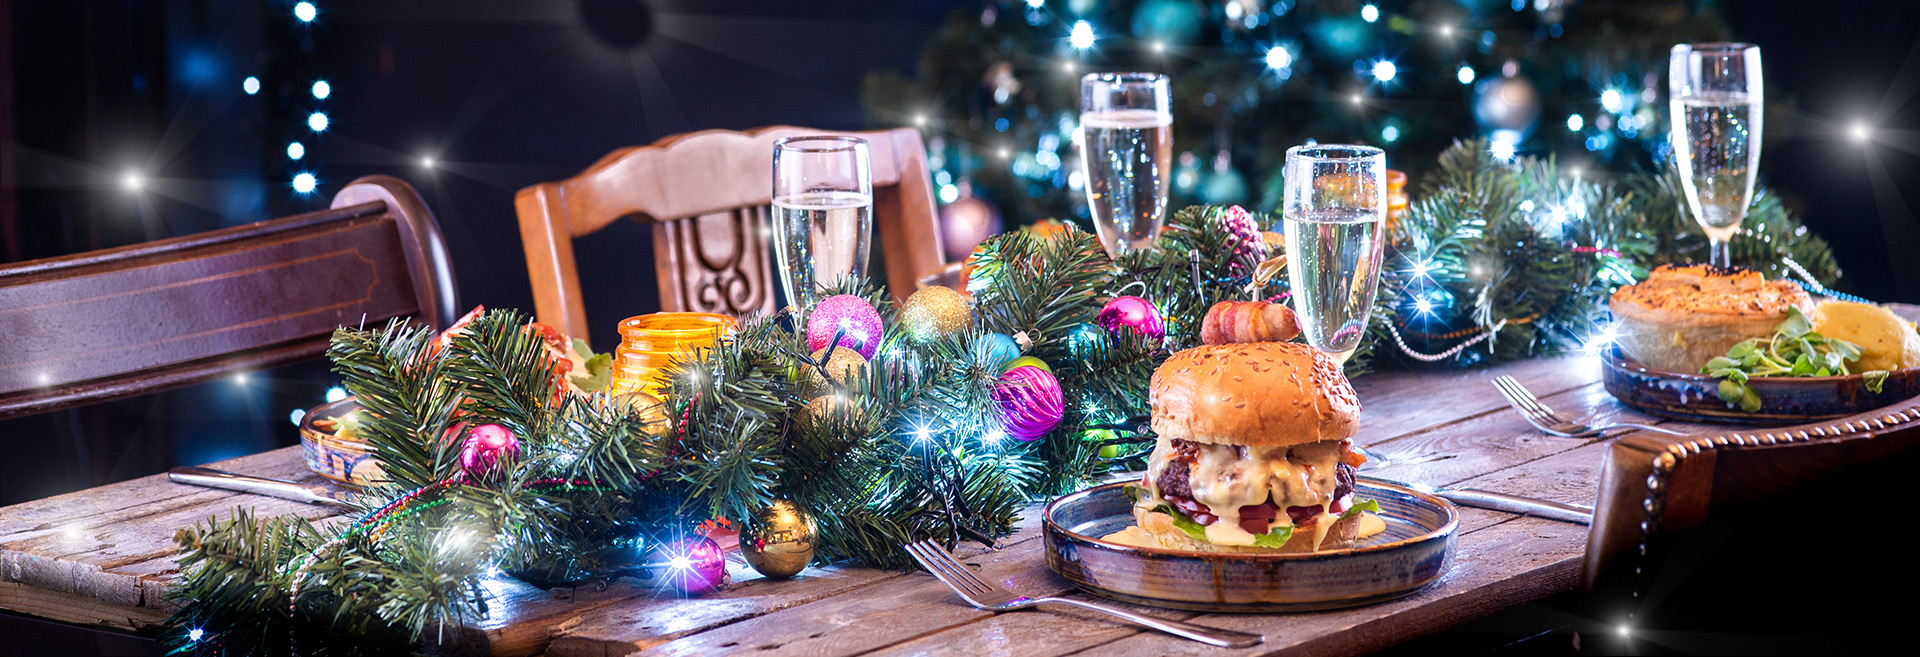 Christmas at The Railway Tavern